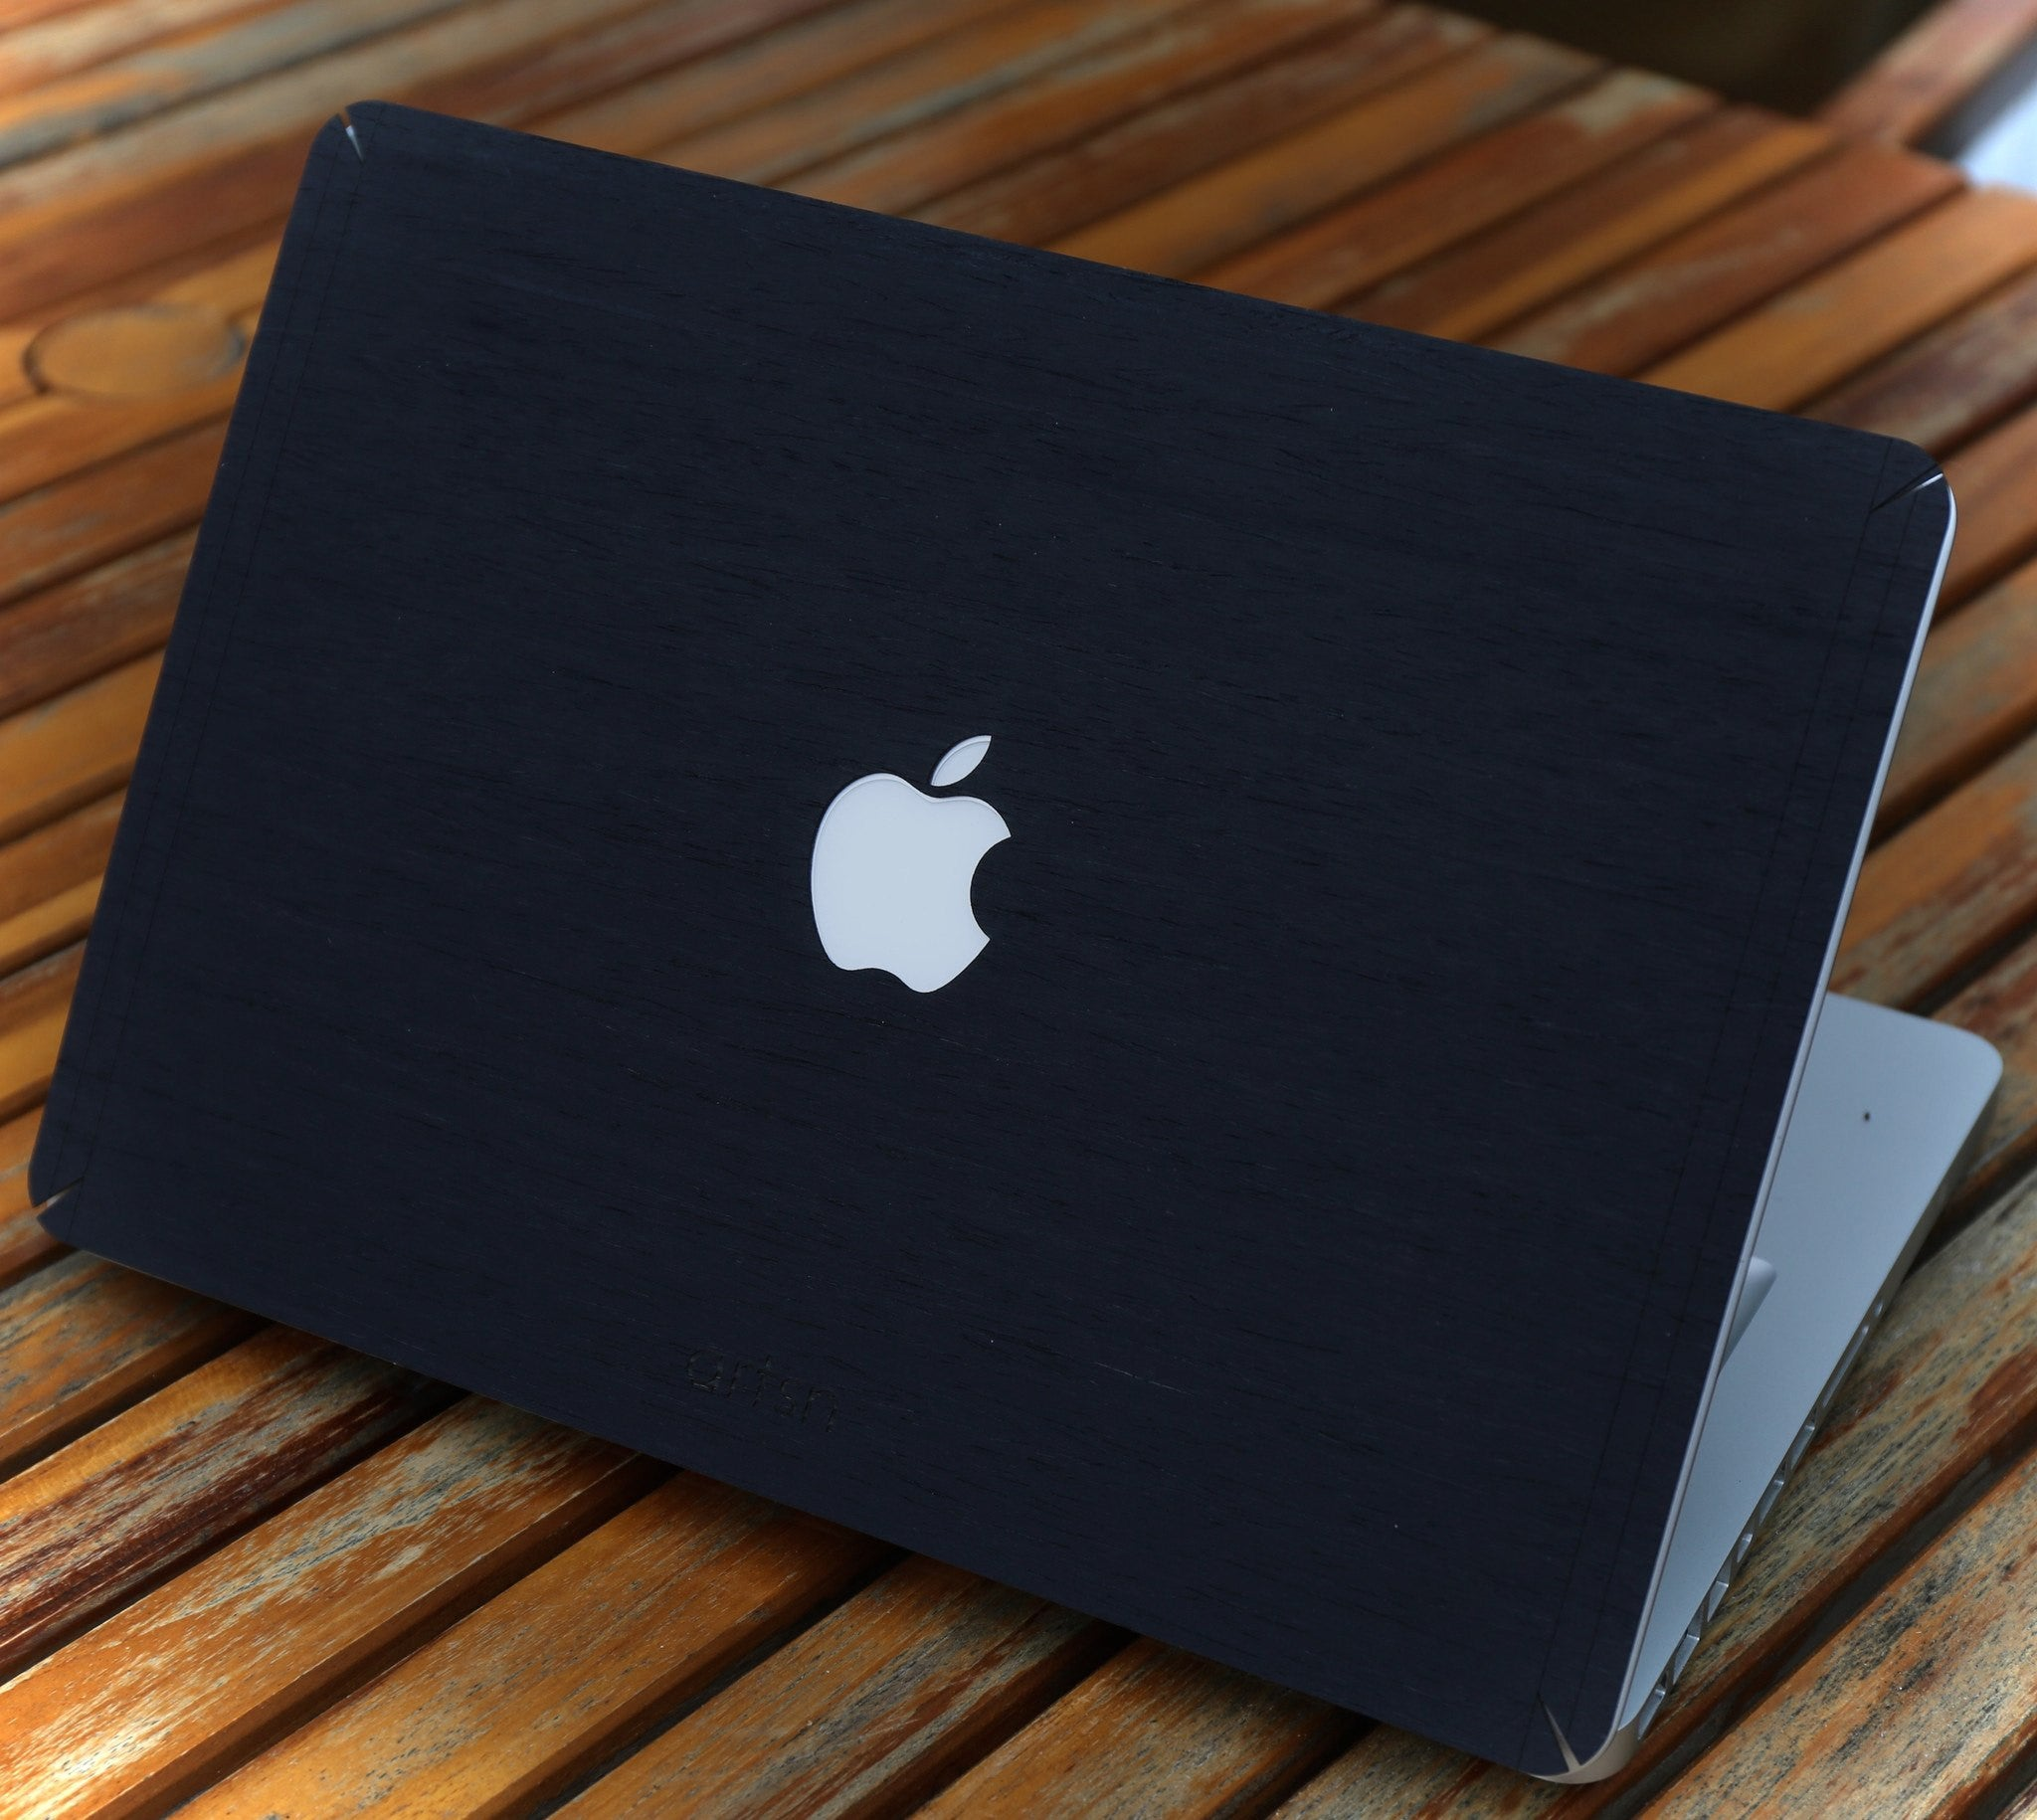 Gem Series 4018 With Zebrawood From: Artsn Goods Macbook Wood Covers Real Wood Skins IPhone